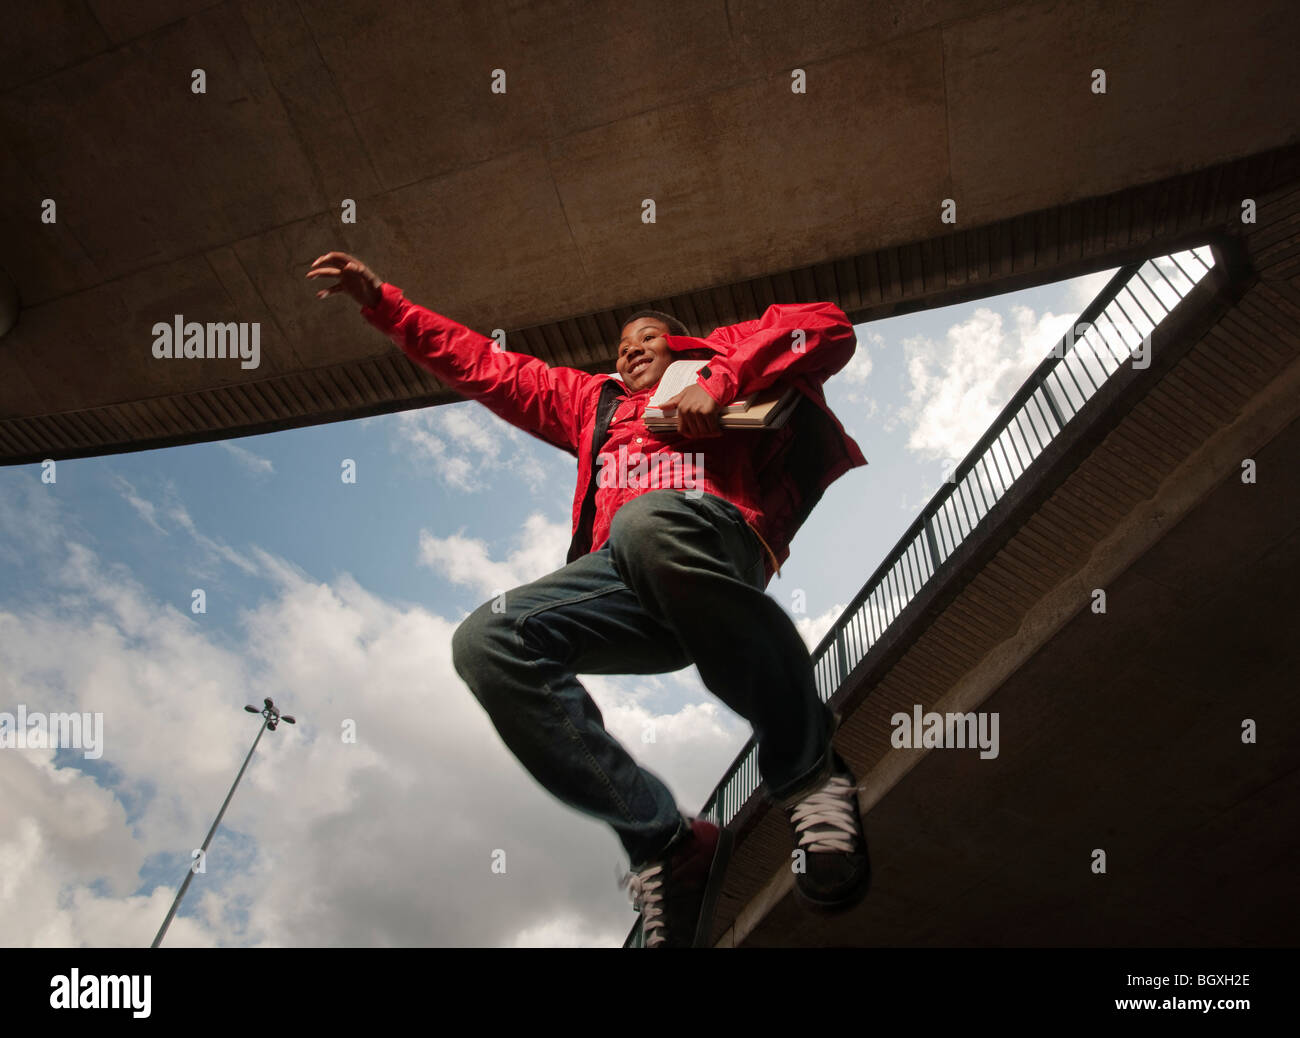 teenage boy jumping with books - Stock Image